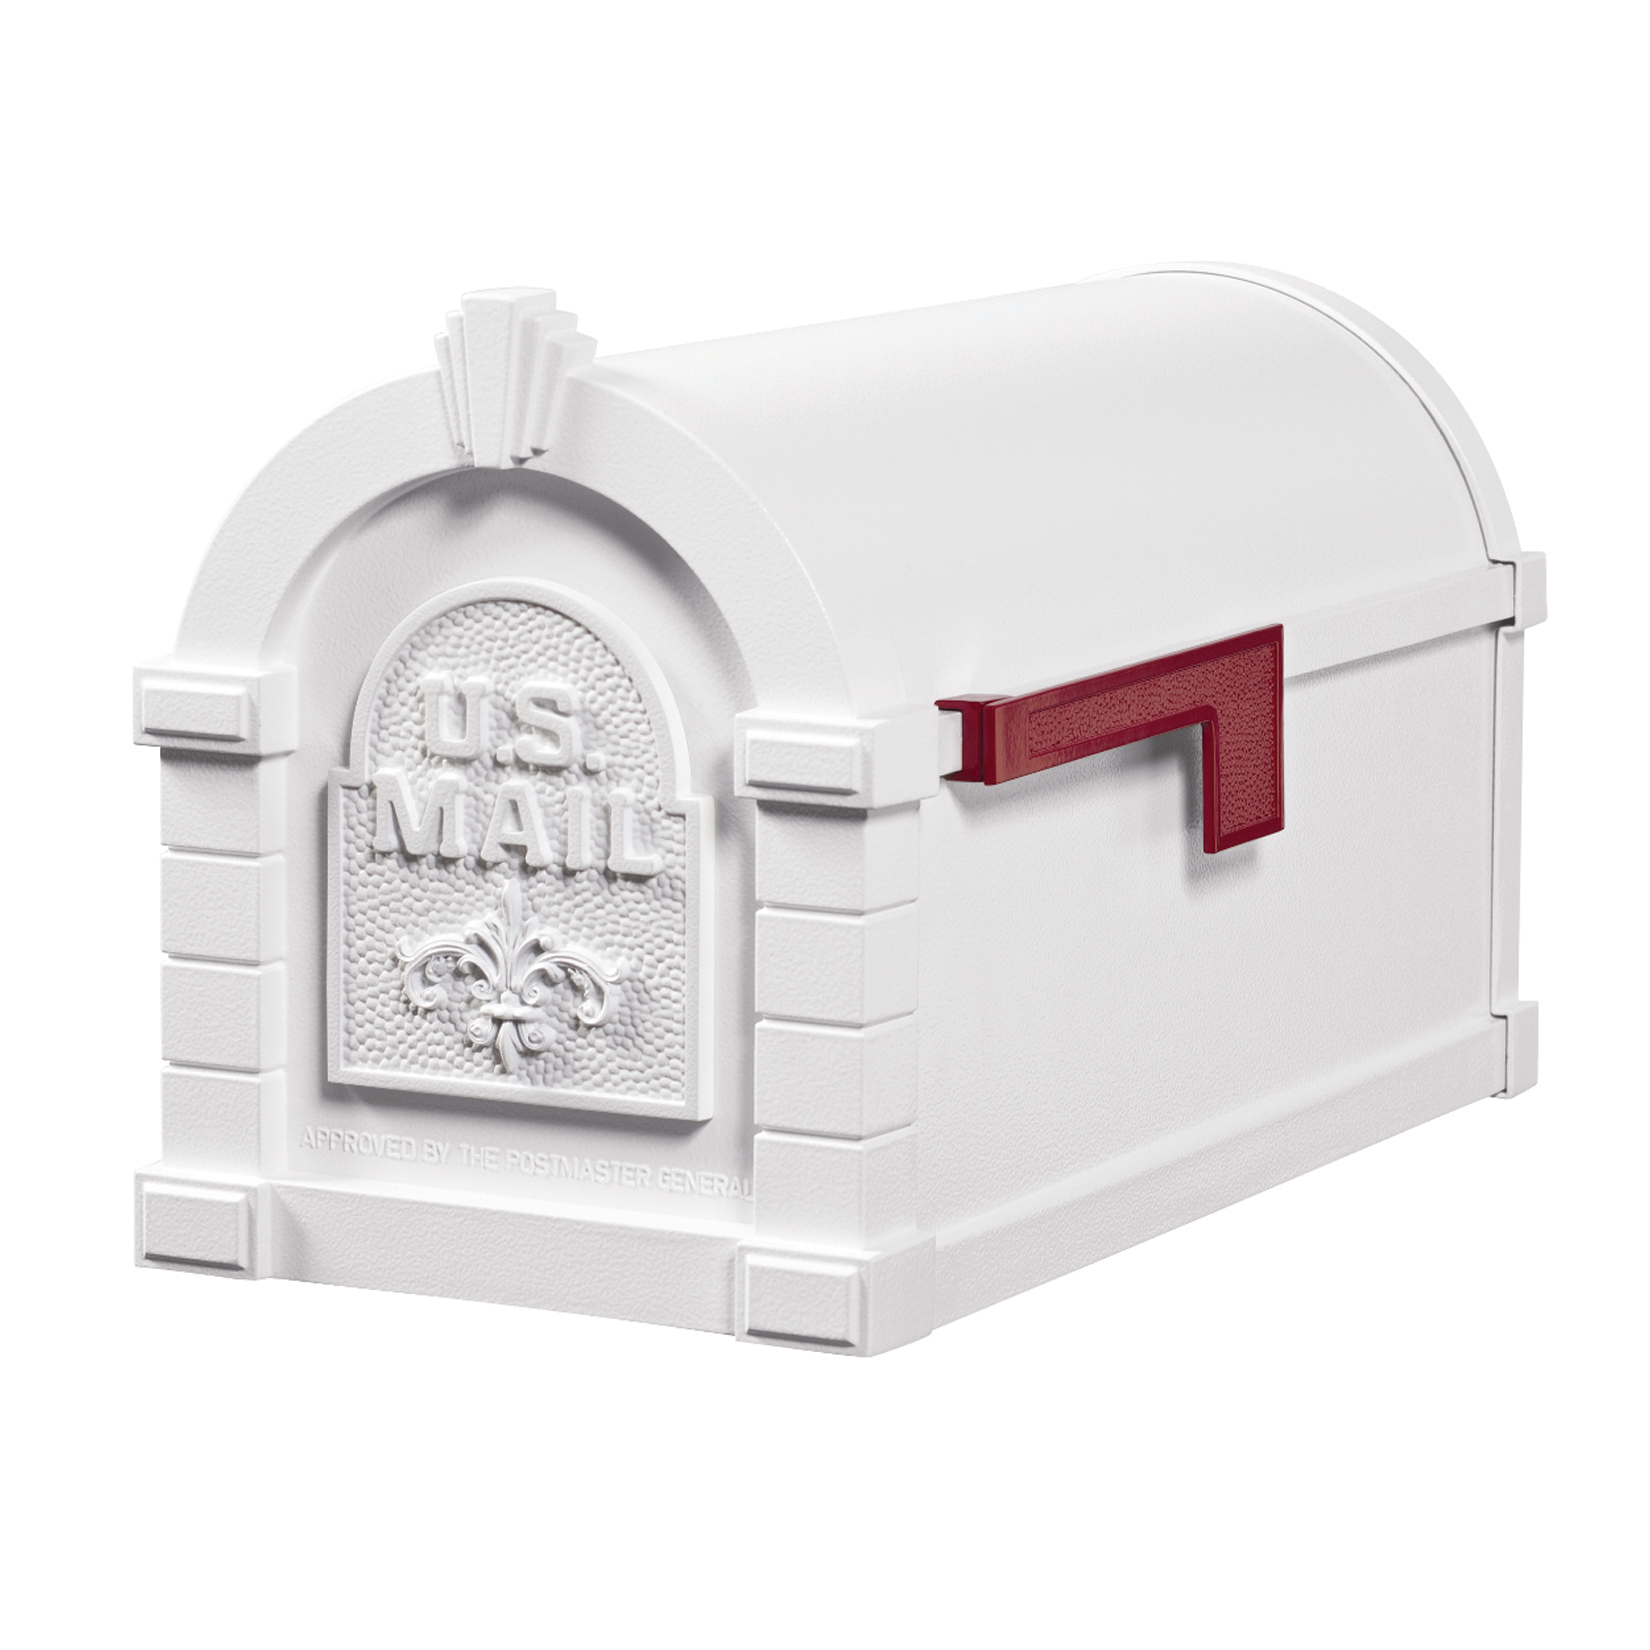 Gaines Fleur De Lis Keystone Mailboxes - All White